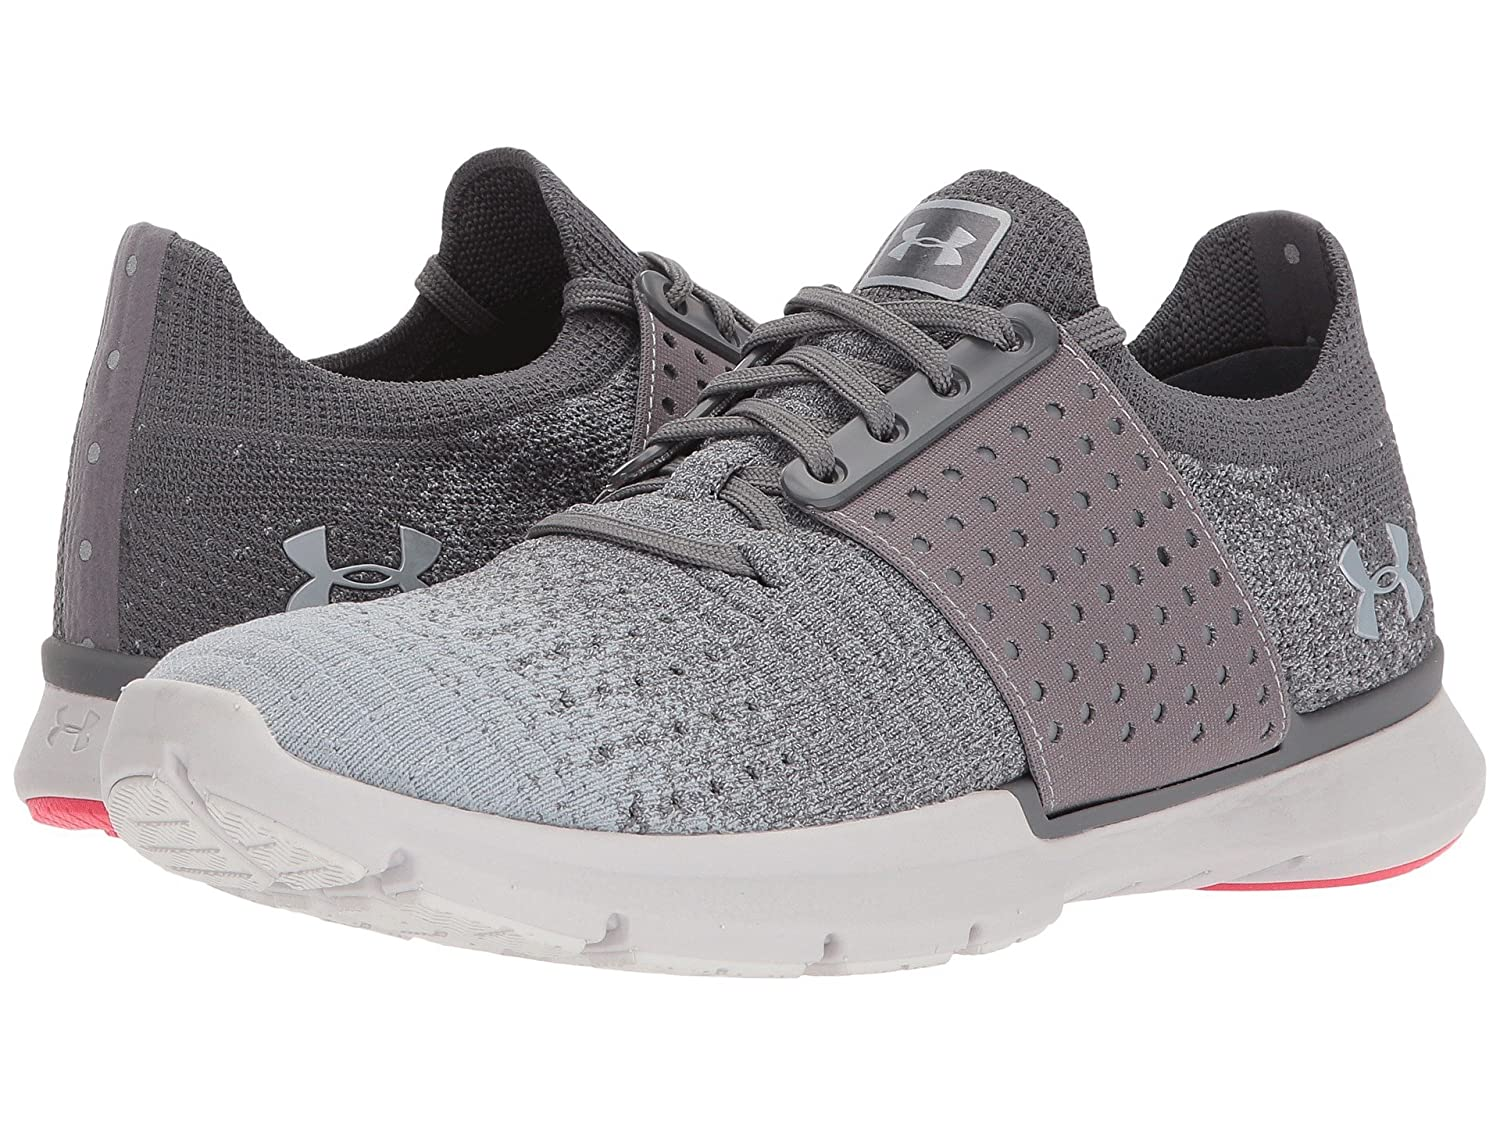 【国内在庫】 [(アンダーアーマー) Under Armour] [レディースランニングシューズ UA Speedform Slingride Armour] 2 Gray Fade Gray/Overcast Running Shoes] (並行輸入品) B07N6QZGRC Graphite/Glacier Gray/Overcast Gray 7 B - Medium 7 B - Medium|Graphite/Glacier Gray/Overcast Gray, オオガタムラ:f3cd2f76 --- 4x4.lt